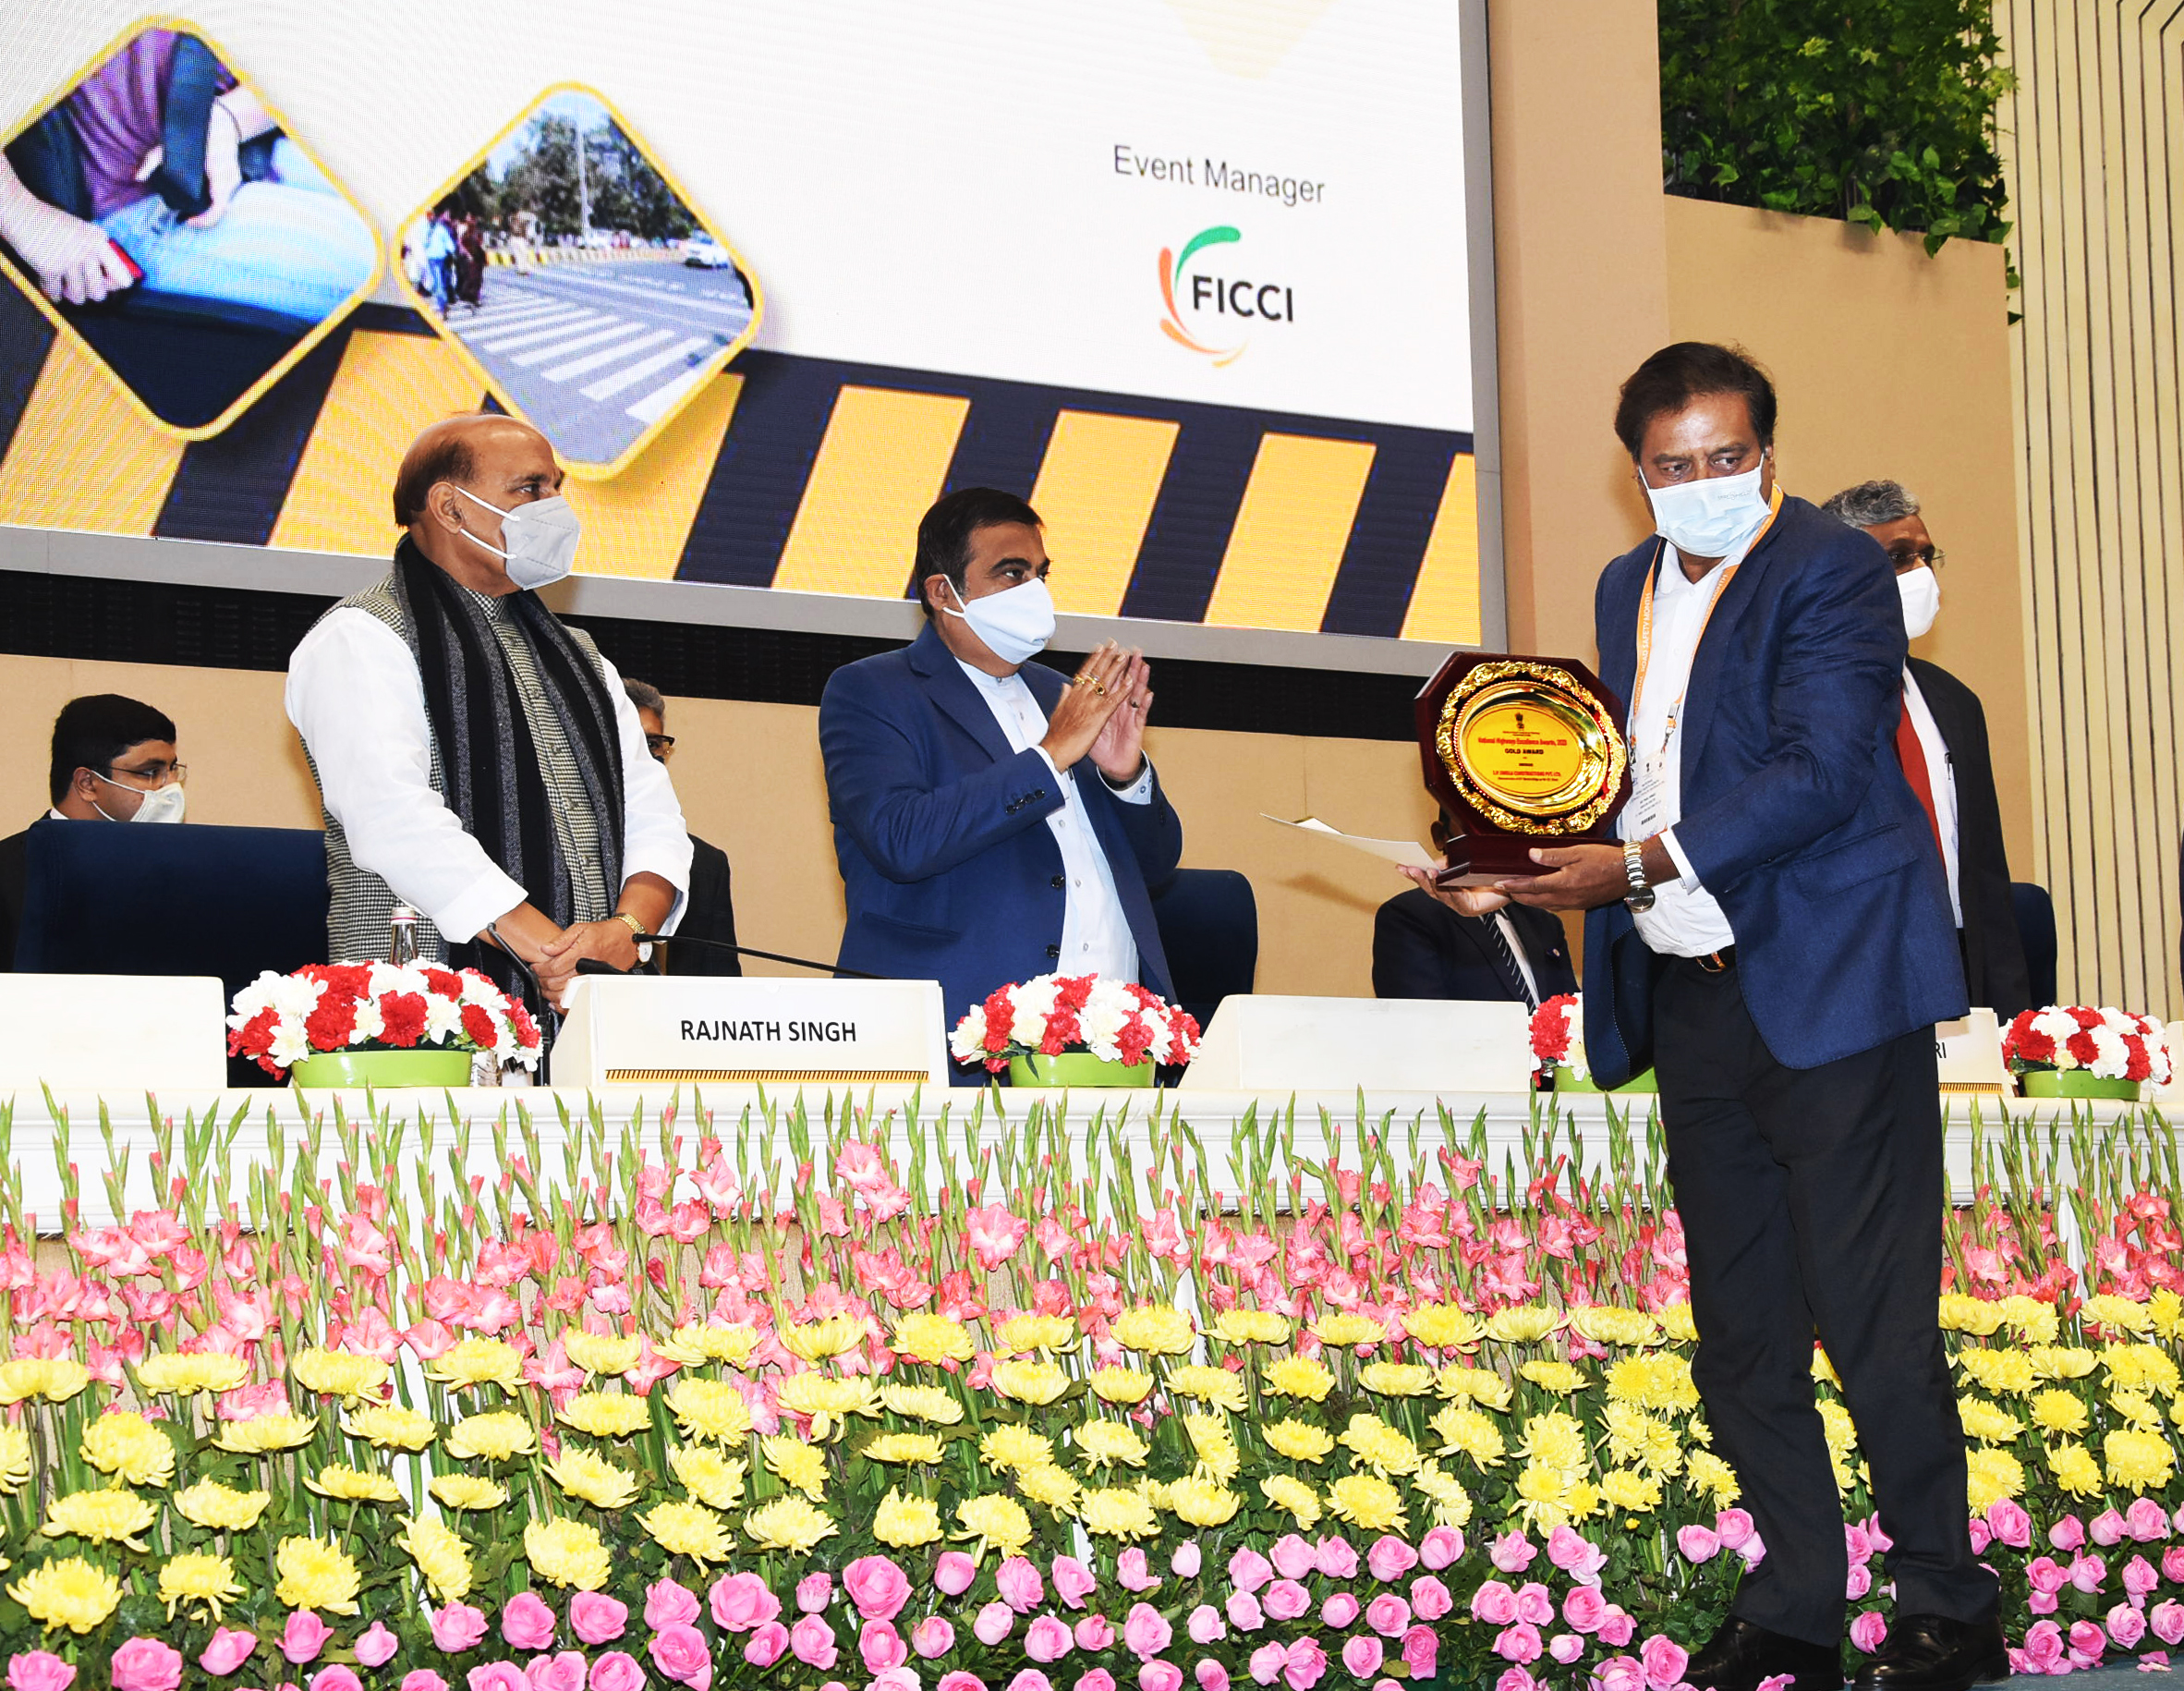 The company has been honoured with prestigious National Highways Excellence Award 2020 in Bridge catoegory by National Highway Authority of India (NHAI)